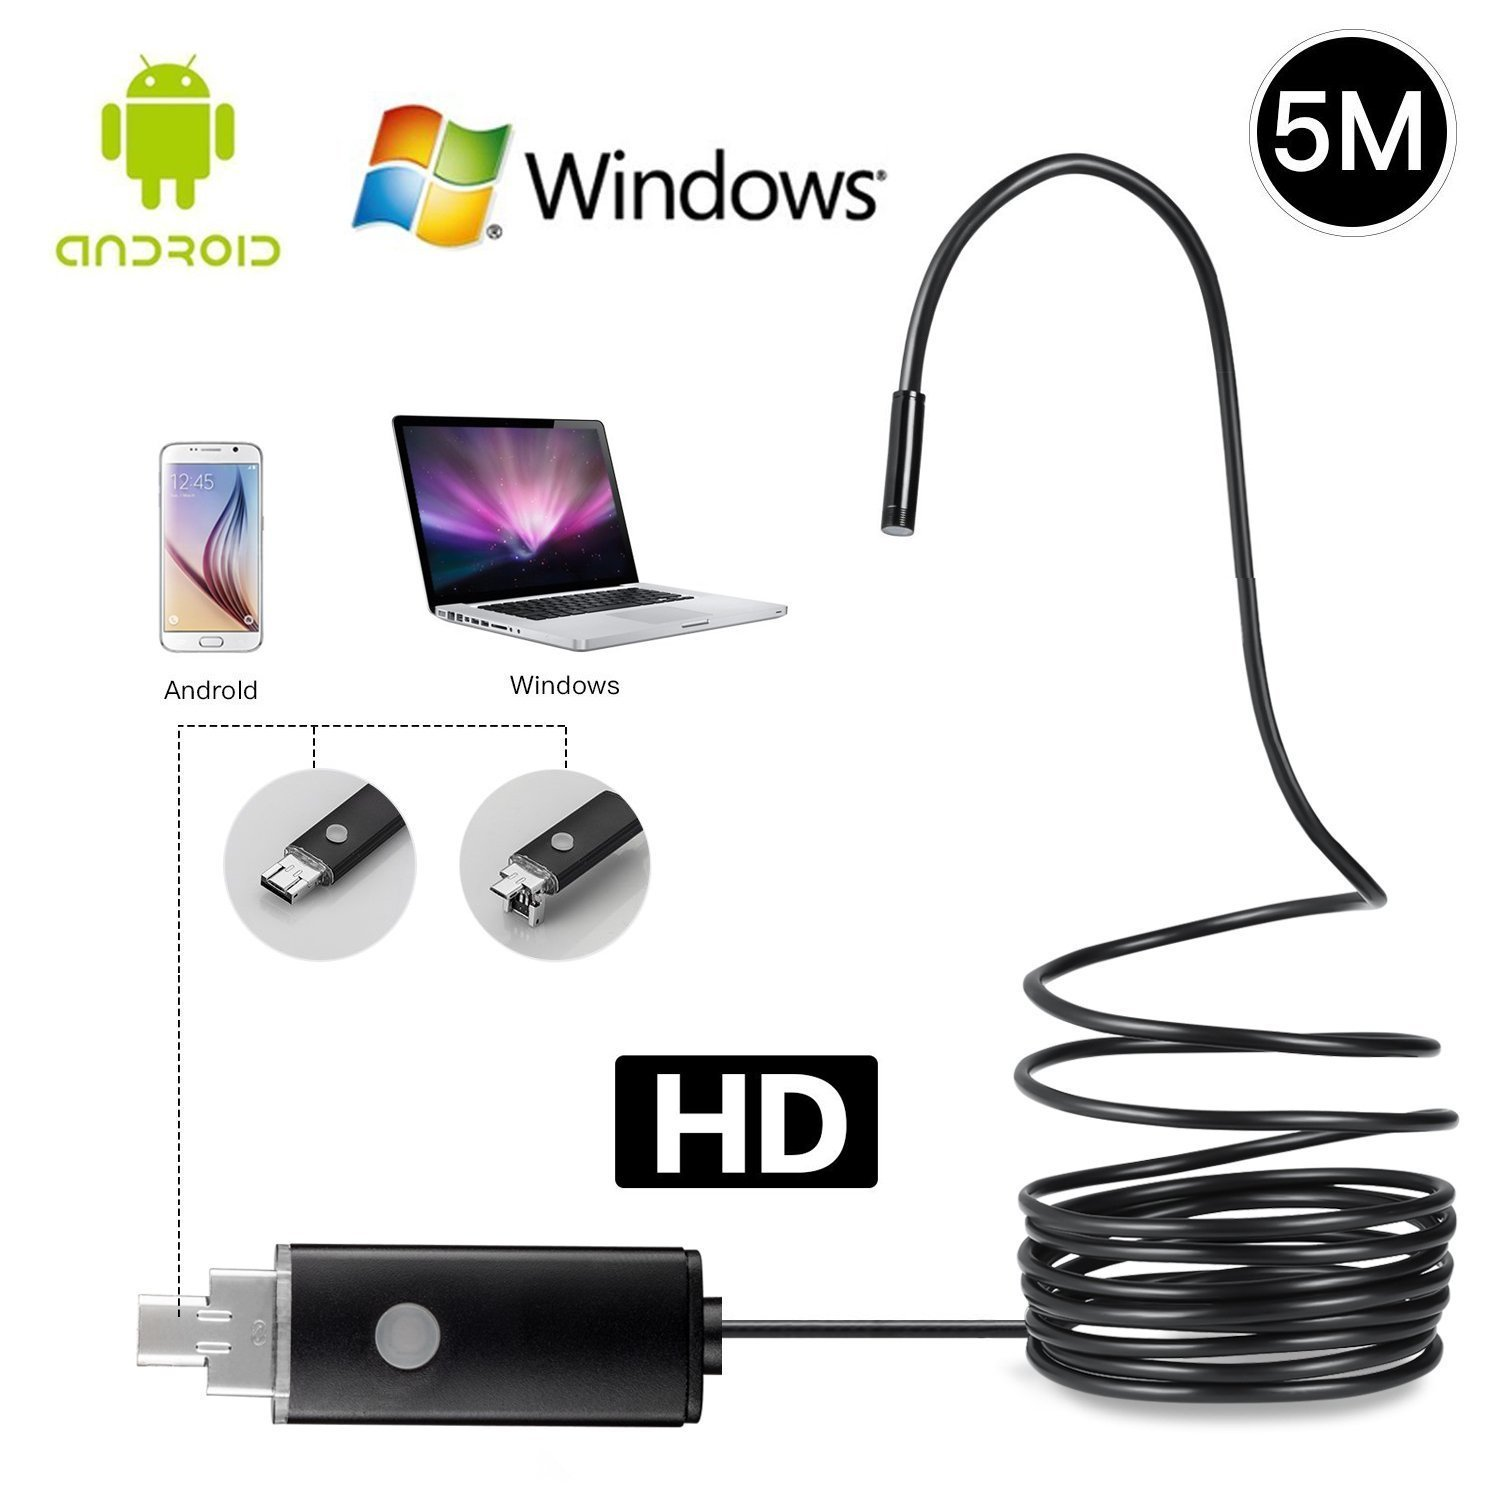 LJKEN 2 in 1 Micro USB Endoscope for PC/ OTG Android Smartphone, Borescope Camera 2.0 Megapixels CMOS HD Waterproof Inspection Snake Camera with 6 Adjustable Led Light - Black(5M)